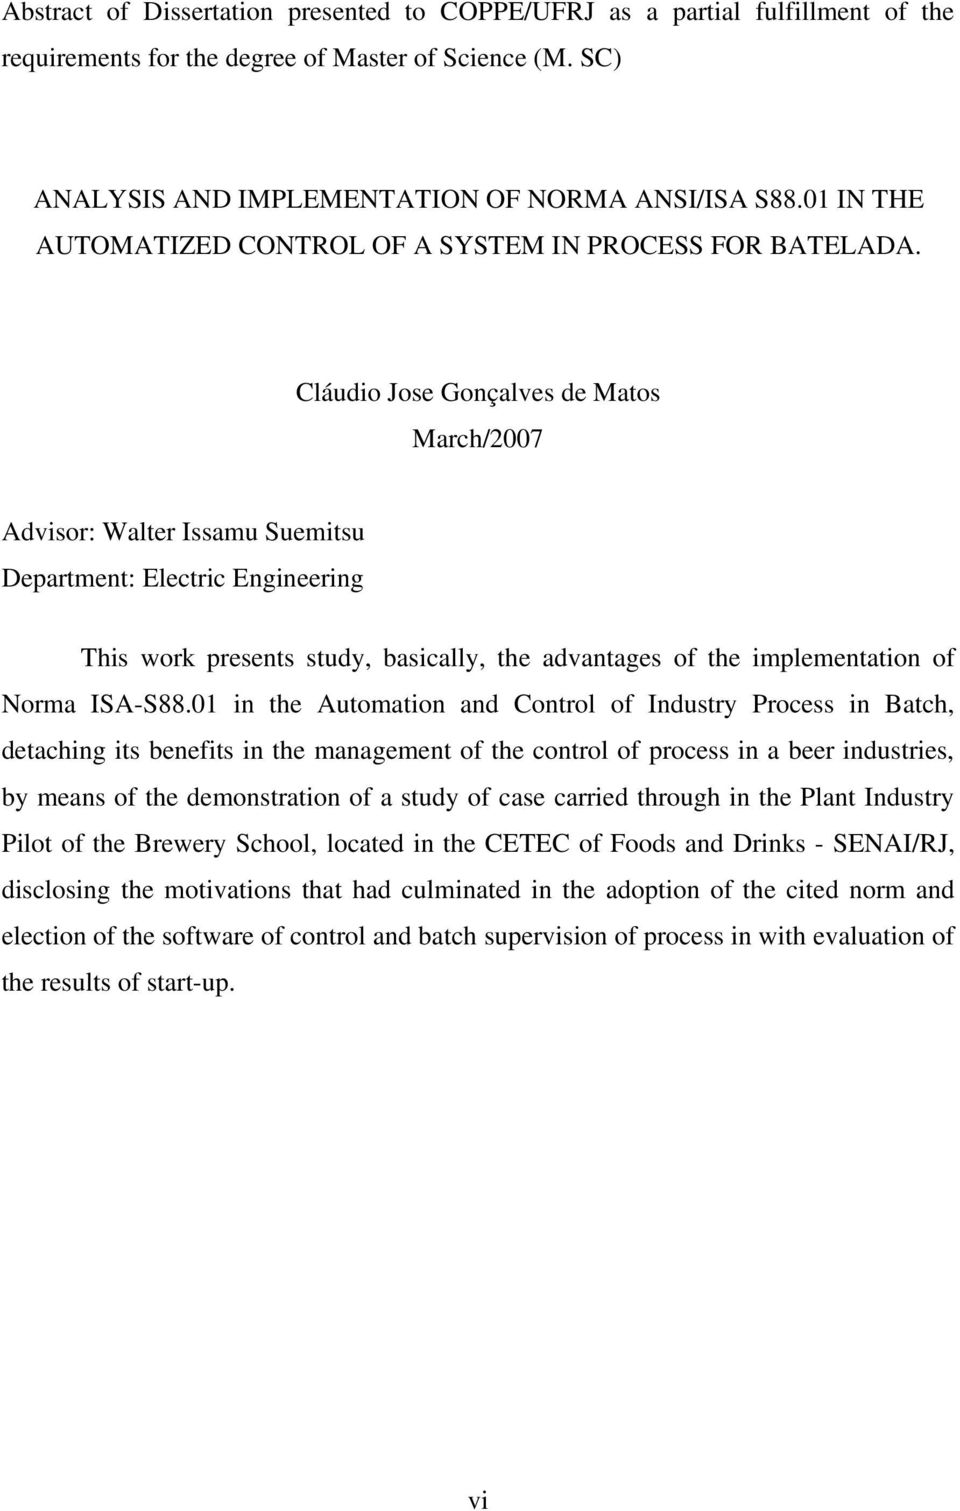 Cláudio Jose Gonçalves de Matos March/2007 Advisor: Walter Issamu Suemitsu Department: Electric Engineering This work presents study, basically, the advantages of the implementation of Norma ISA-S88.